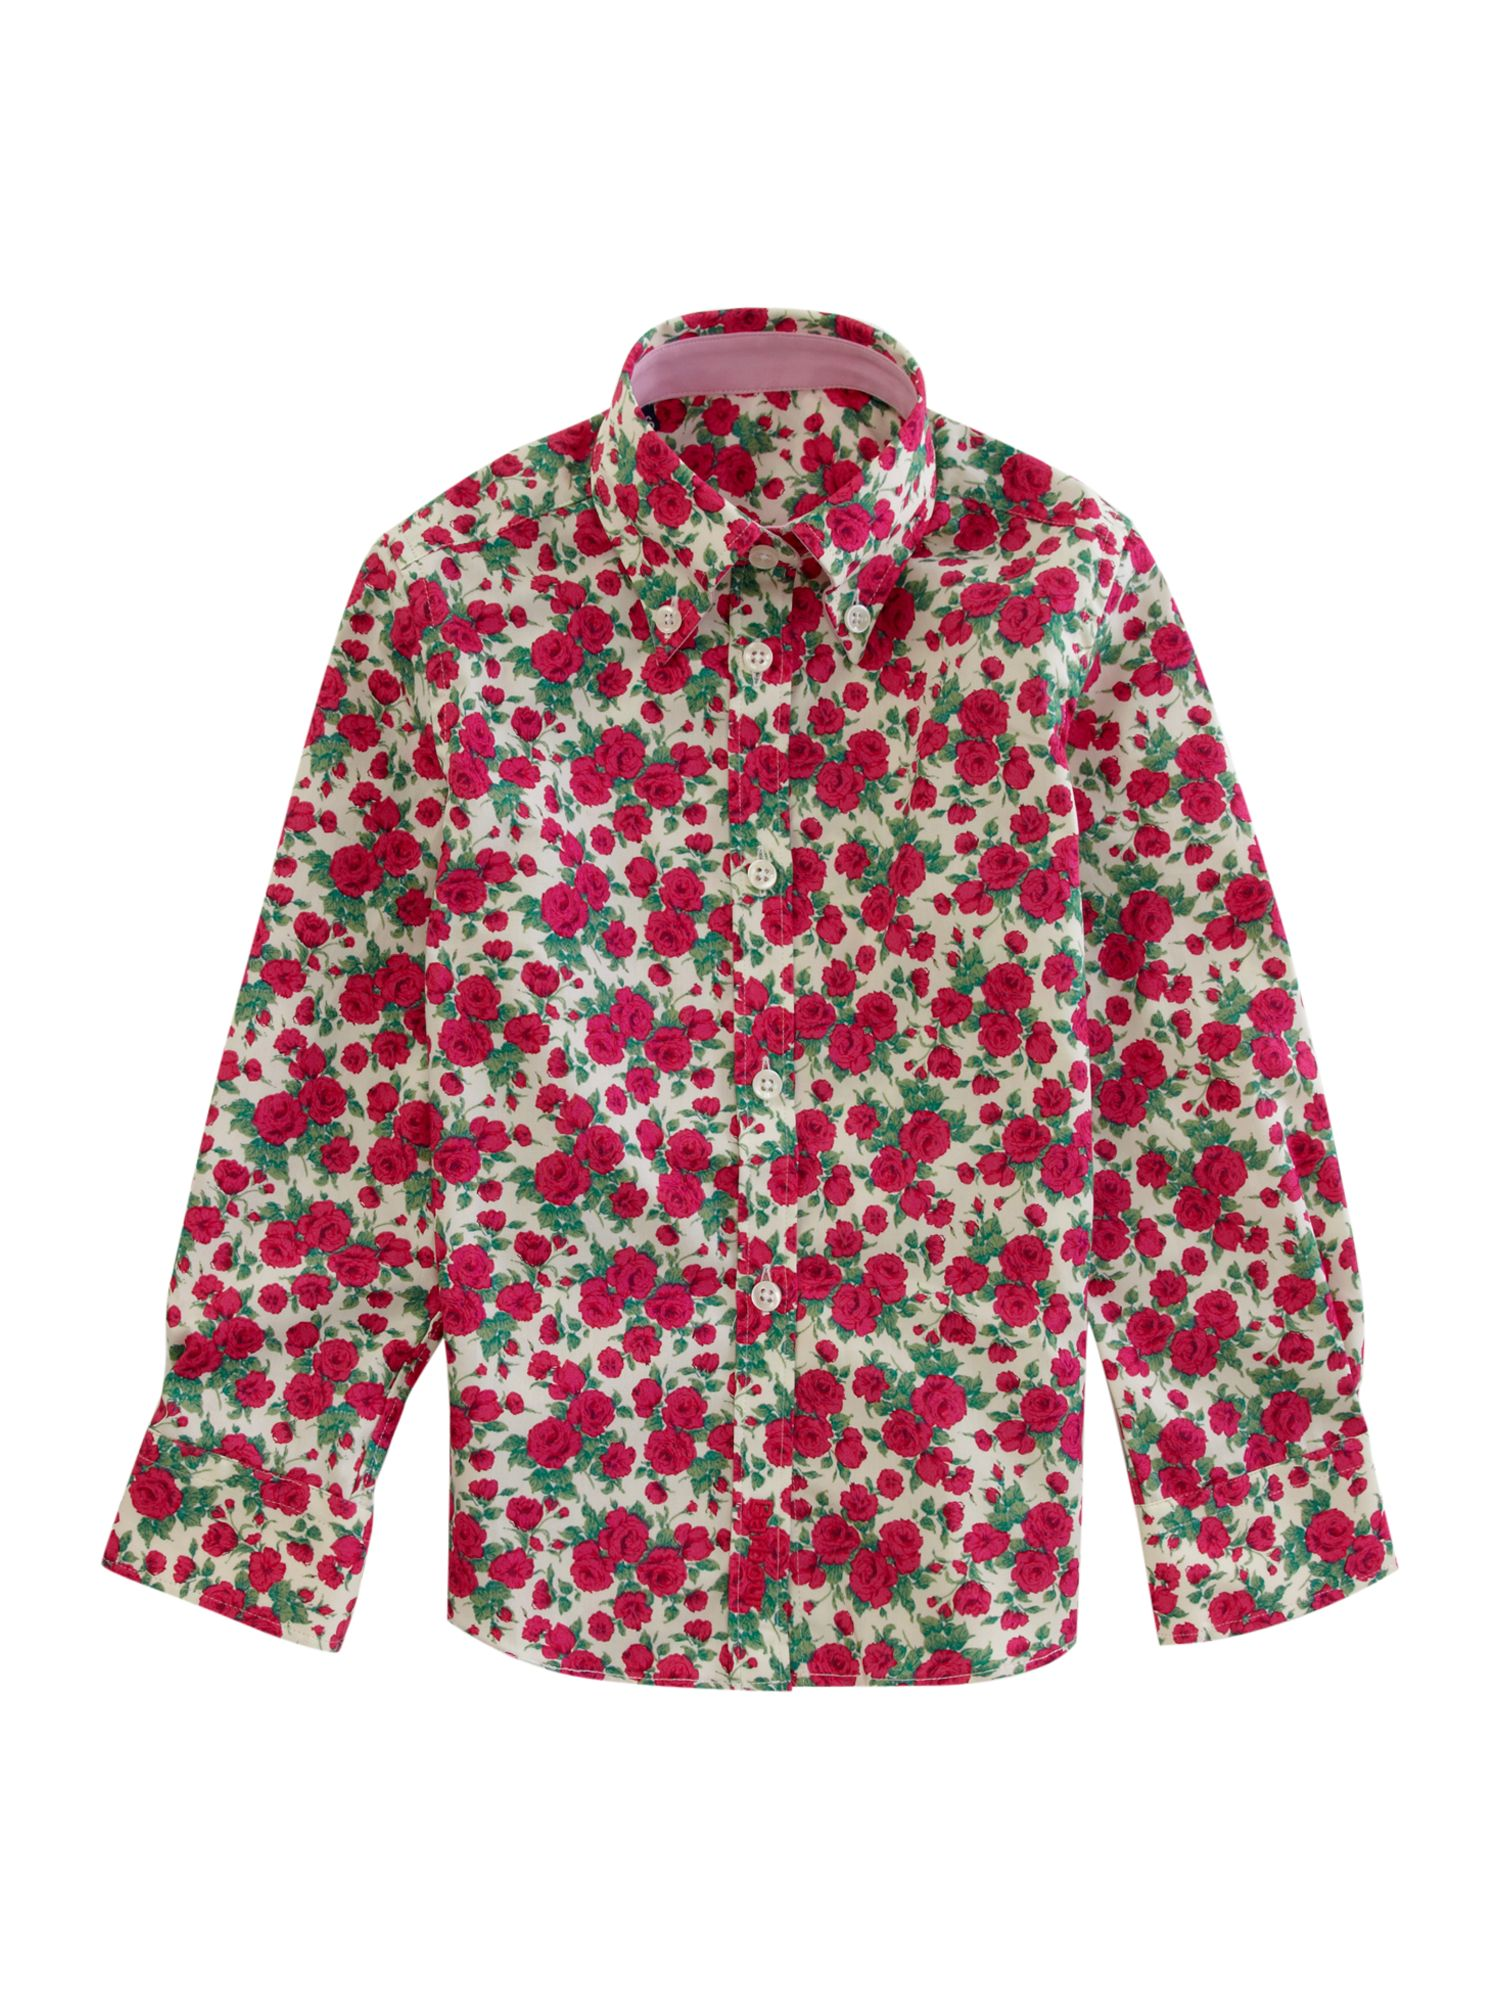 Long-sleeved rose print shirt